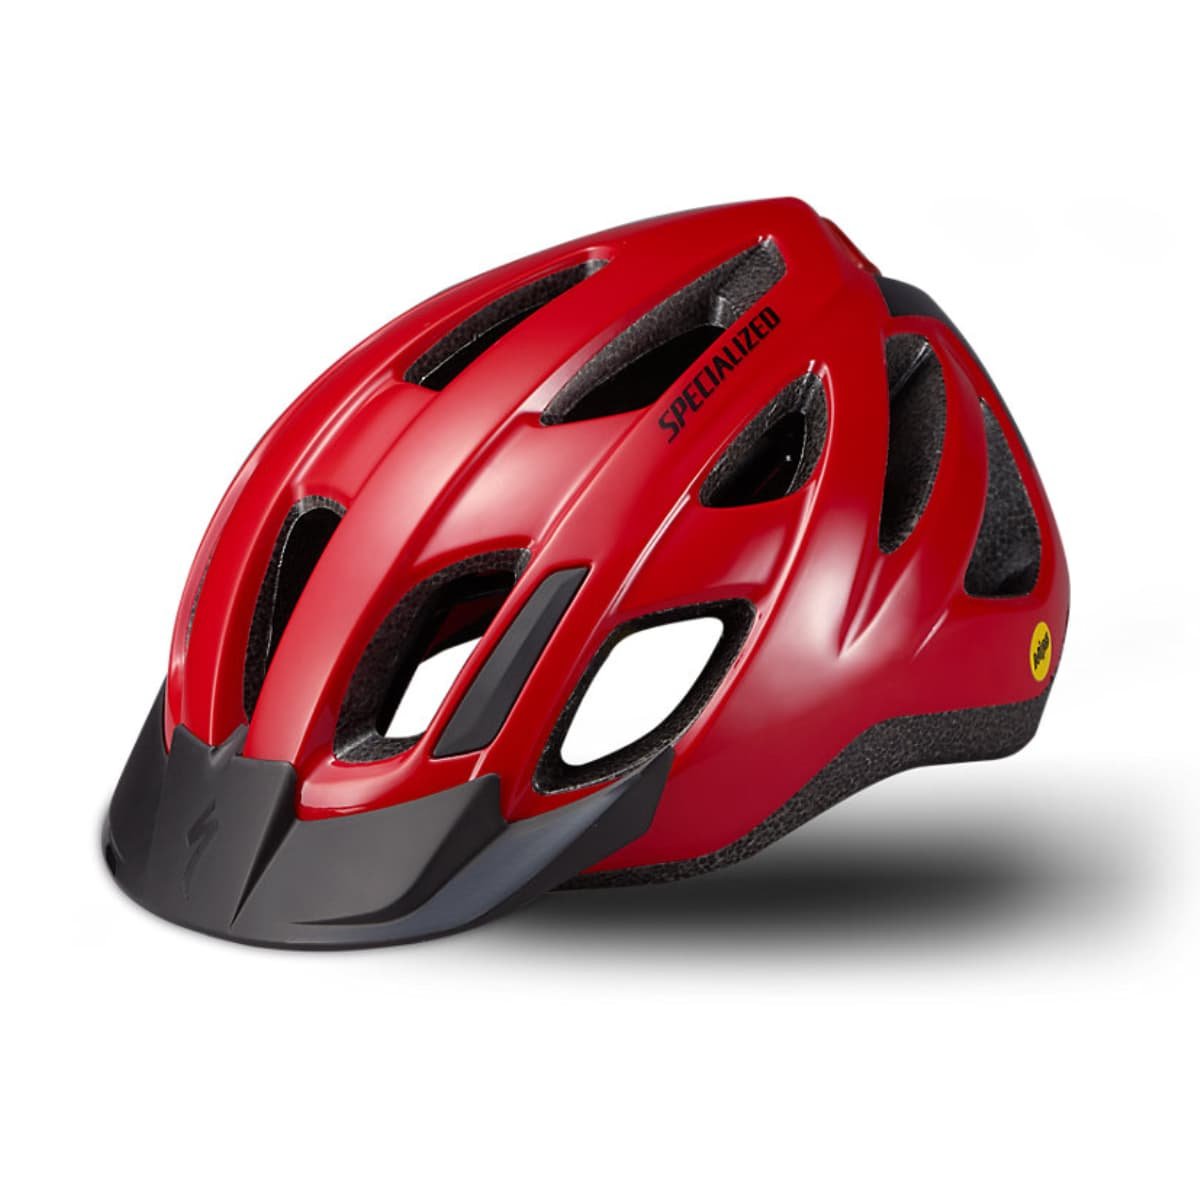 CASQUE SPECIALIZED CENTRO LED MIPS ROUGE